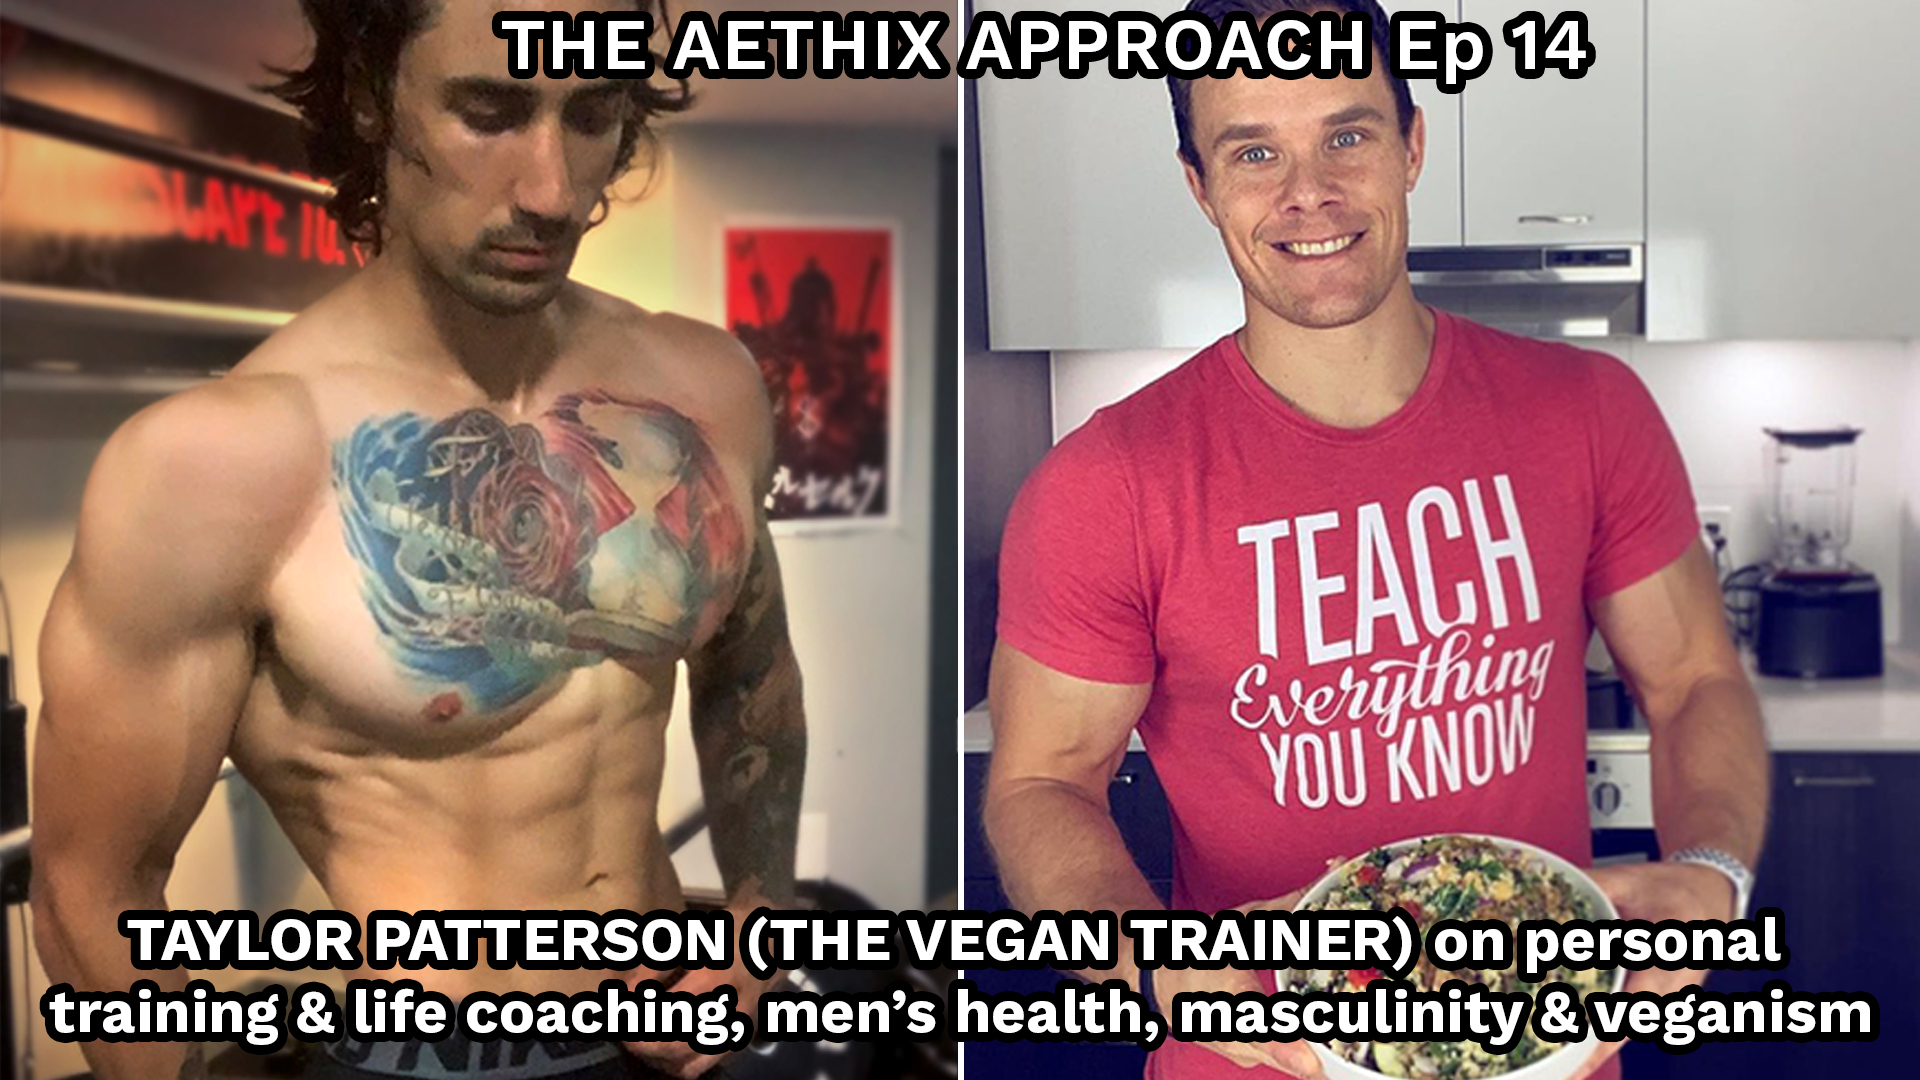 The Aethix Approach Ep 14